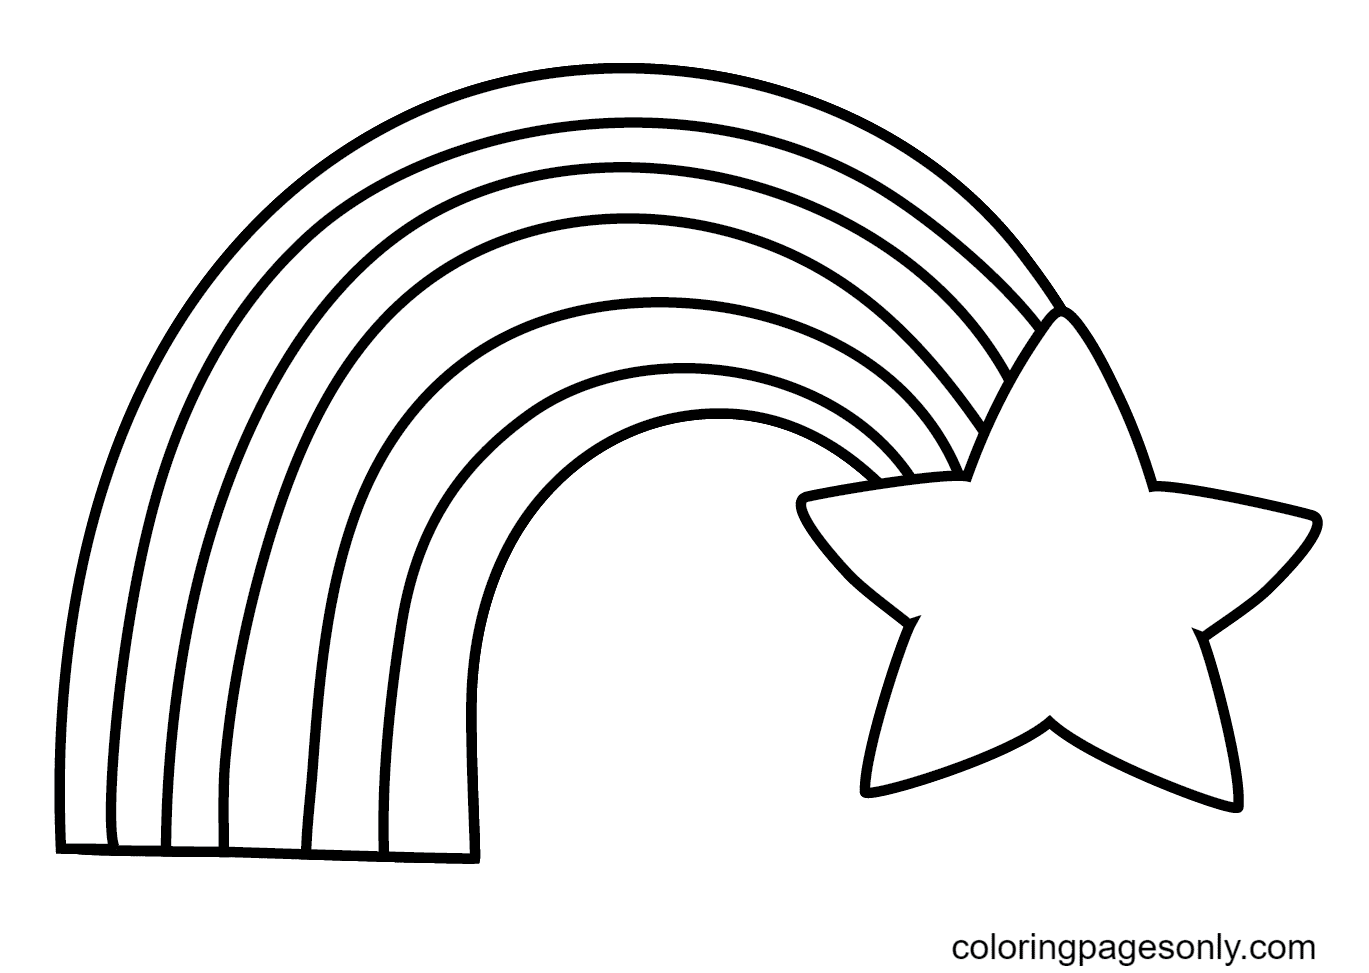 Rainbow With Star Coloring Page